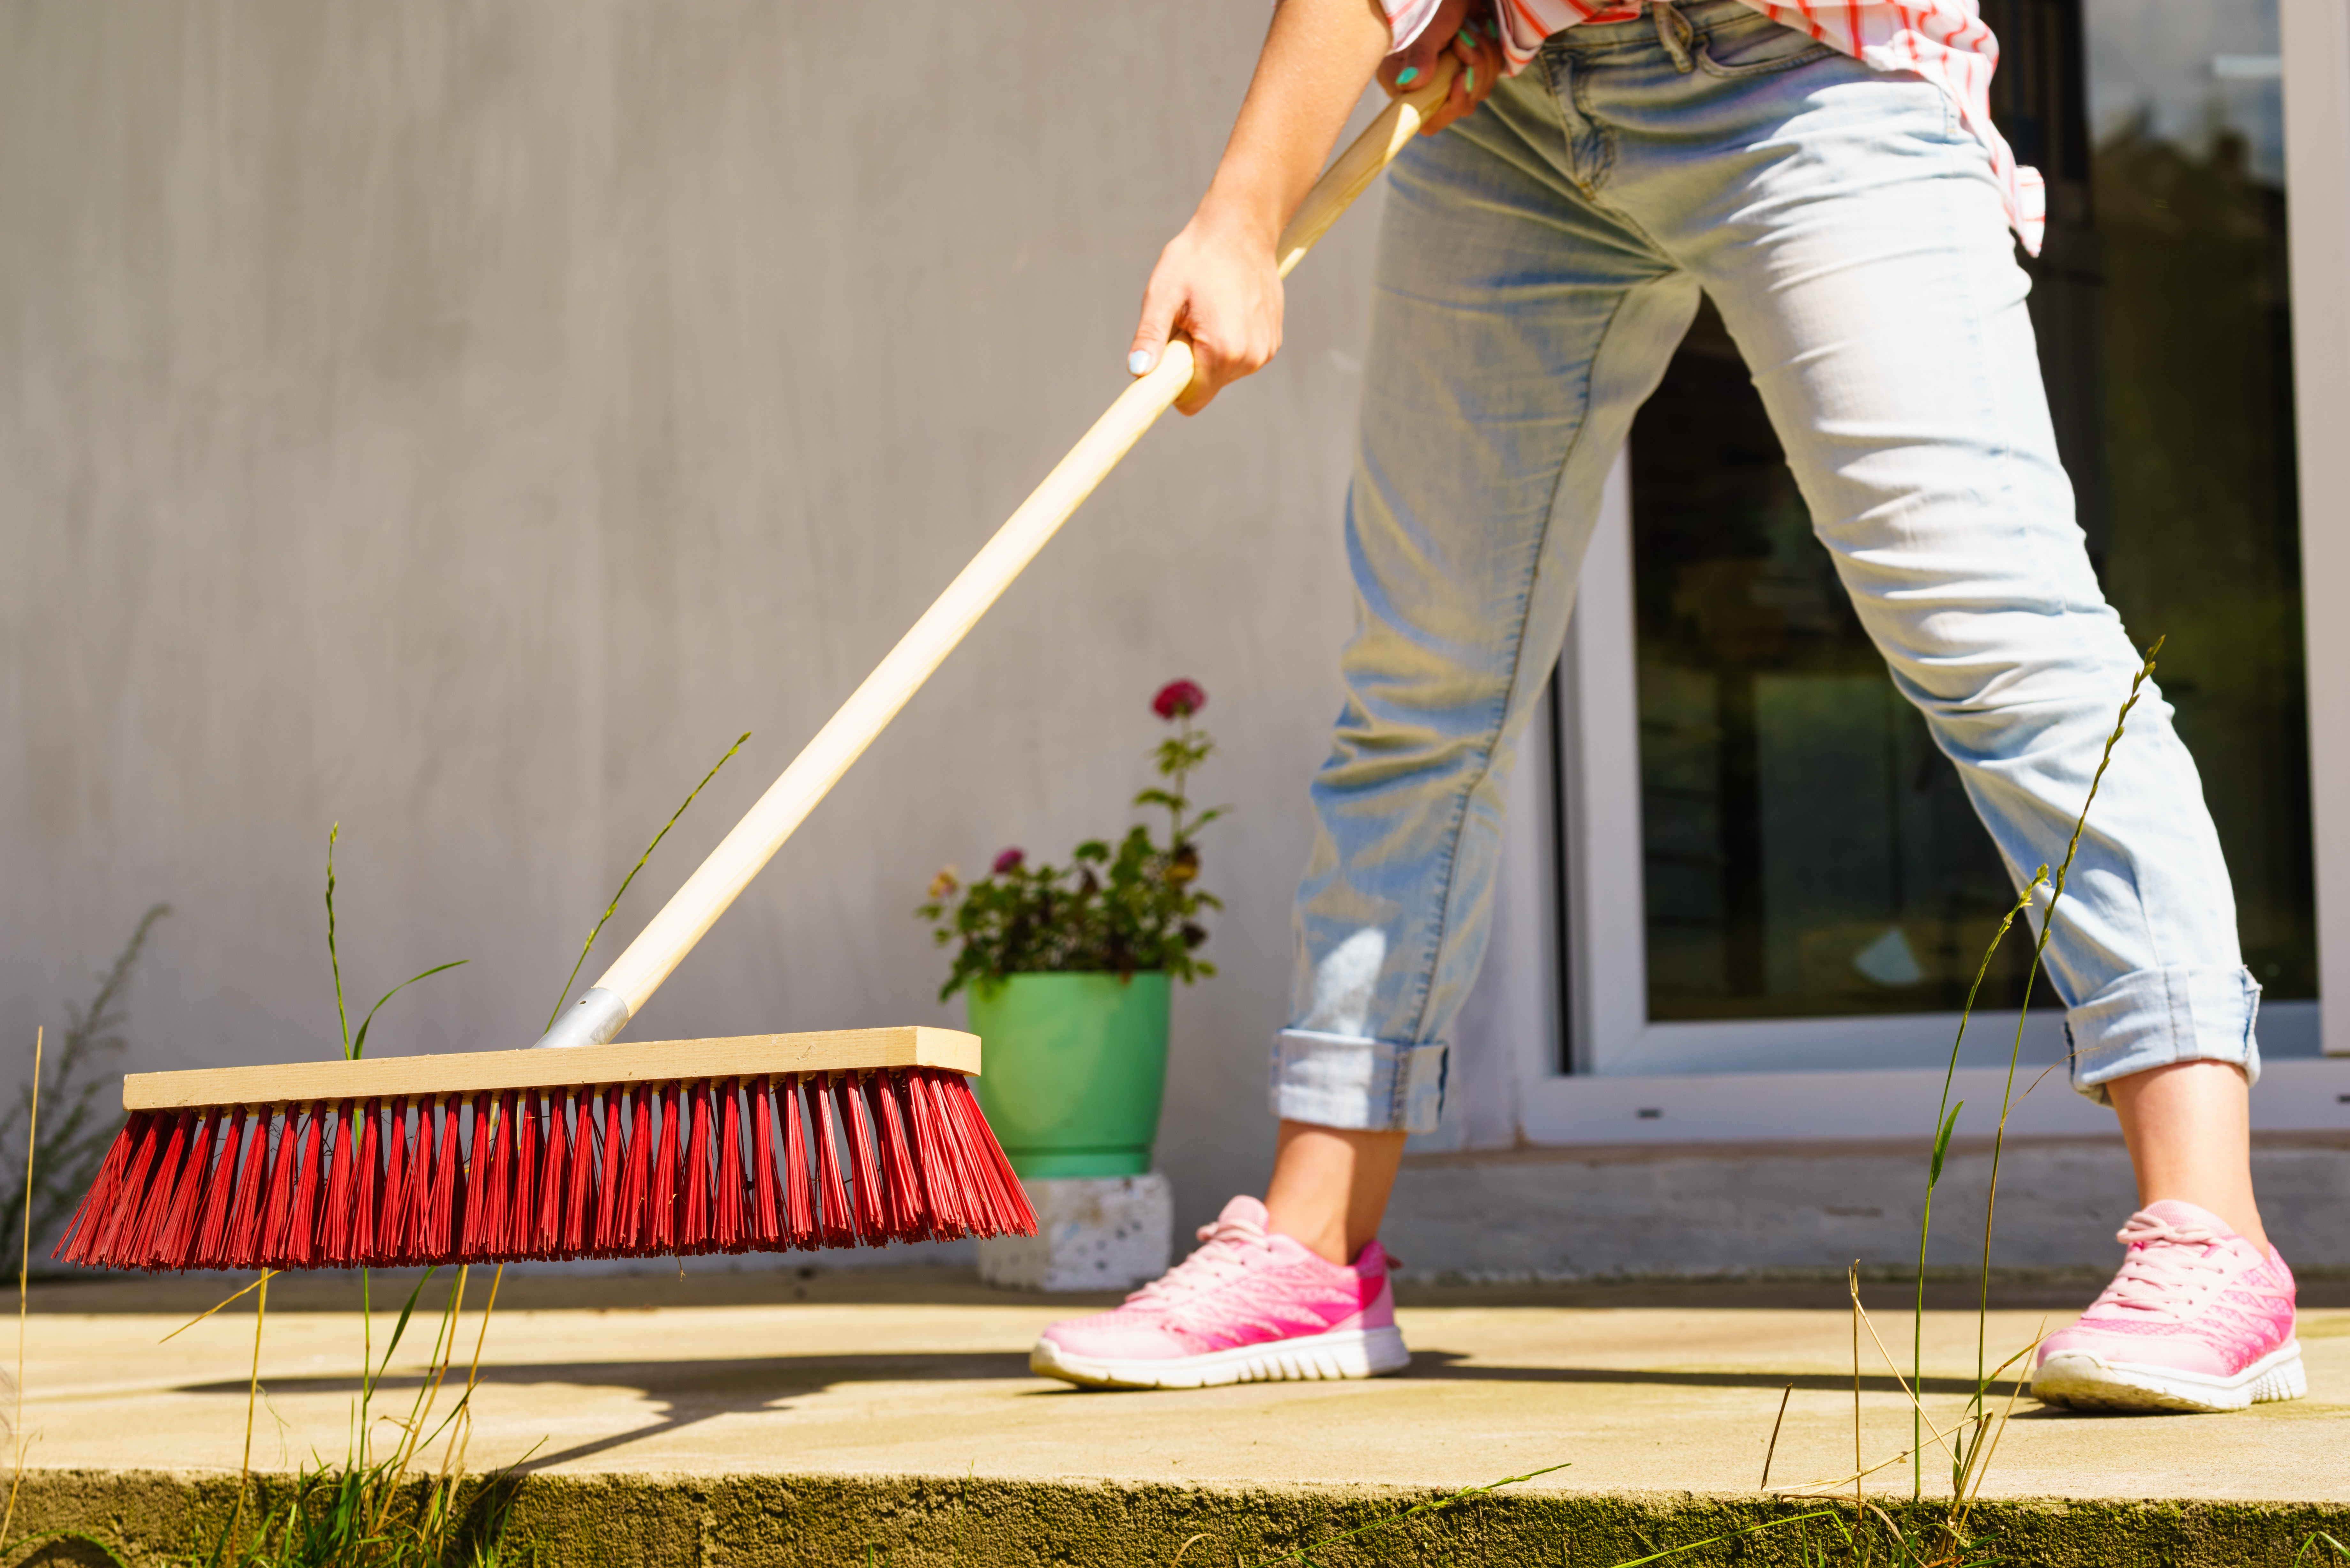 Patio Cleaning, Summer, Spring Cleaning, Broom, Sweeping